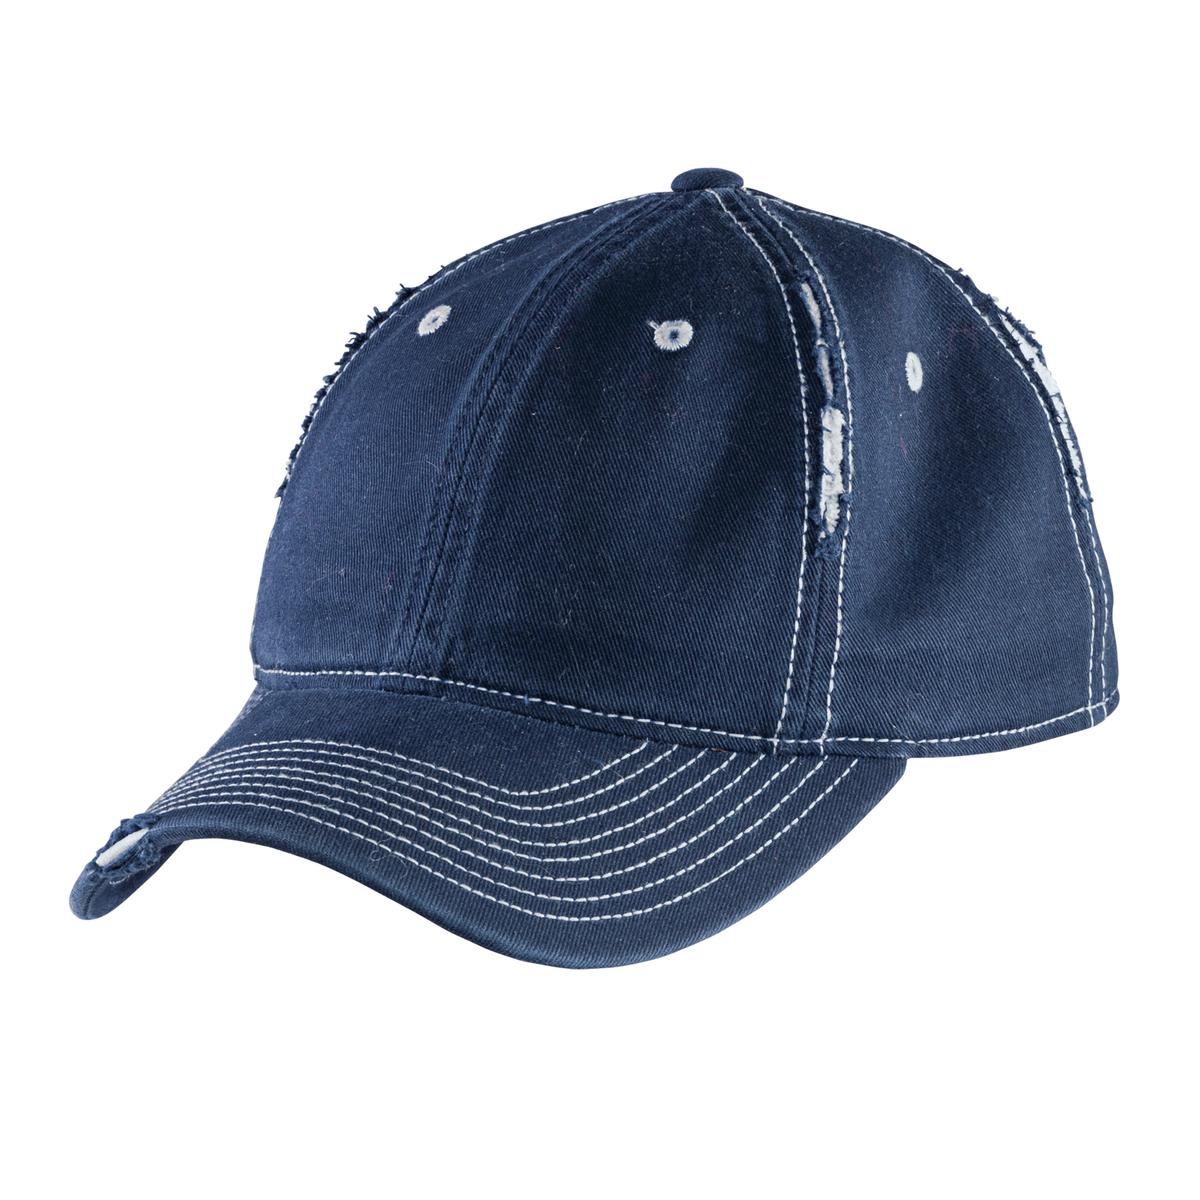 District ®  Rip and Distressed Cap DT612 - New Navy/Light Blue